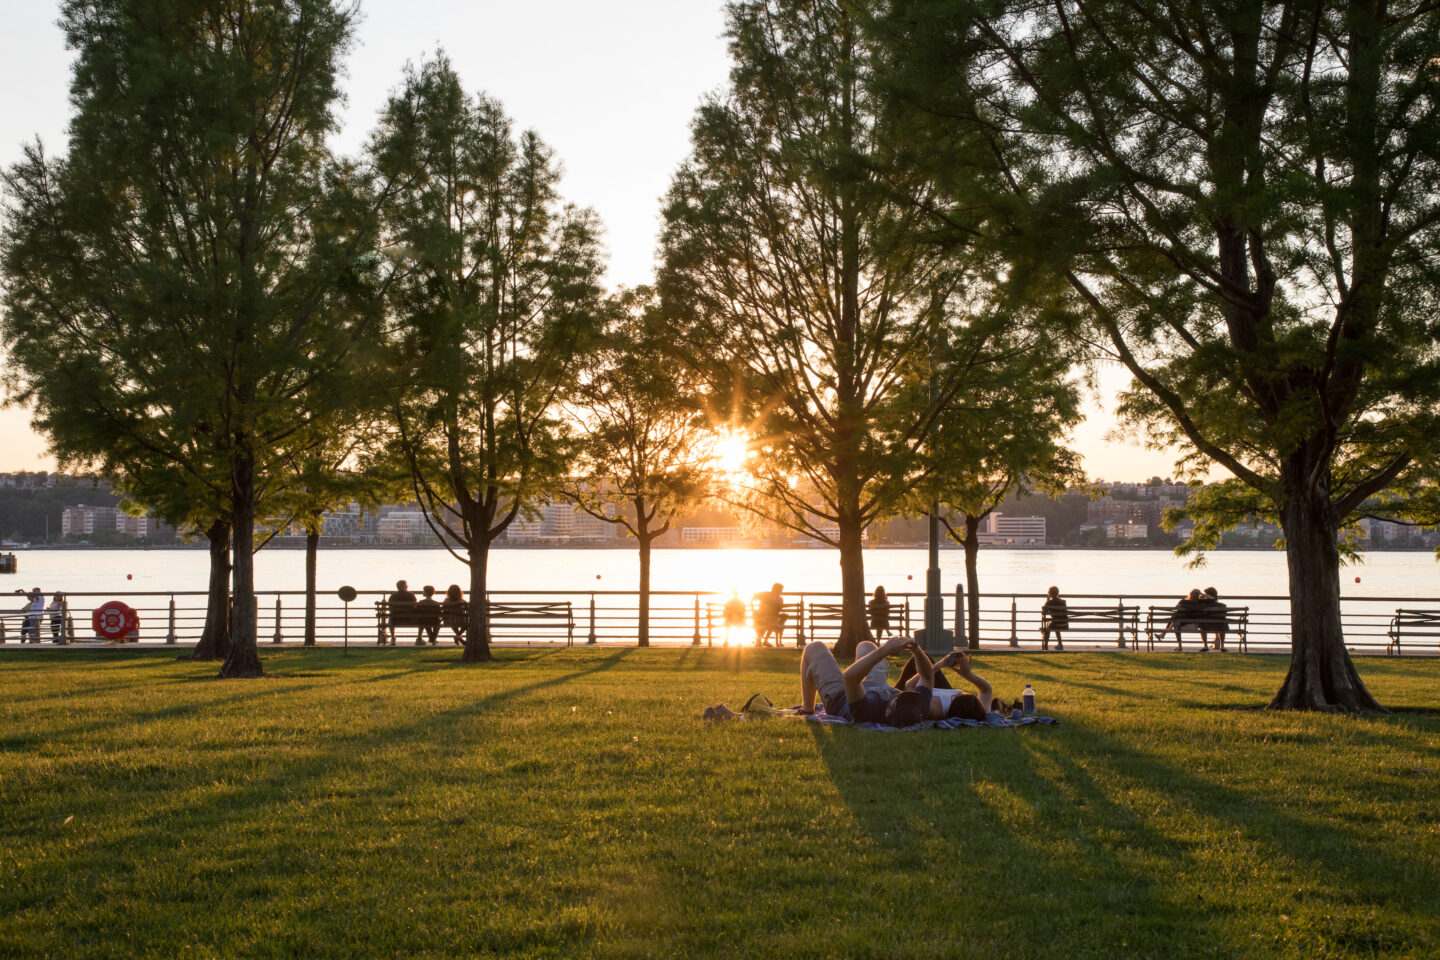 The sunsets as Park Visitors sit on the Clinton Cove lawn bowl